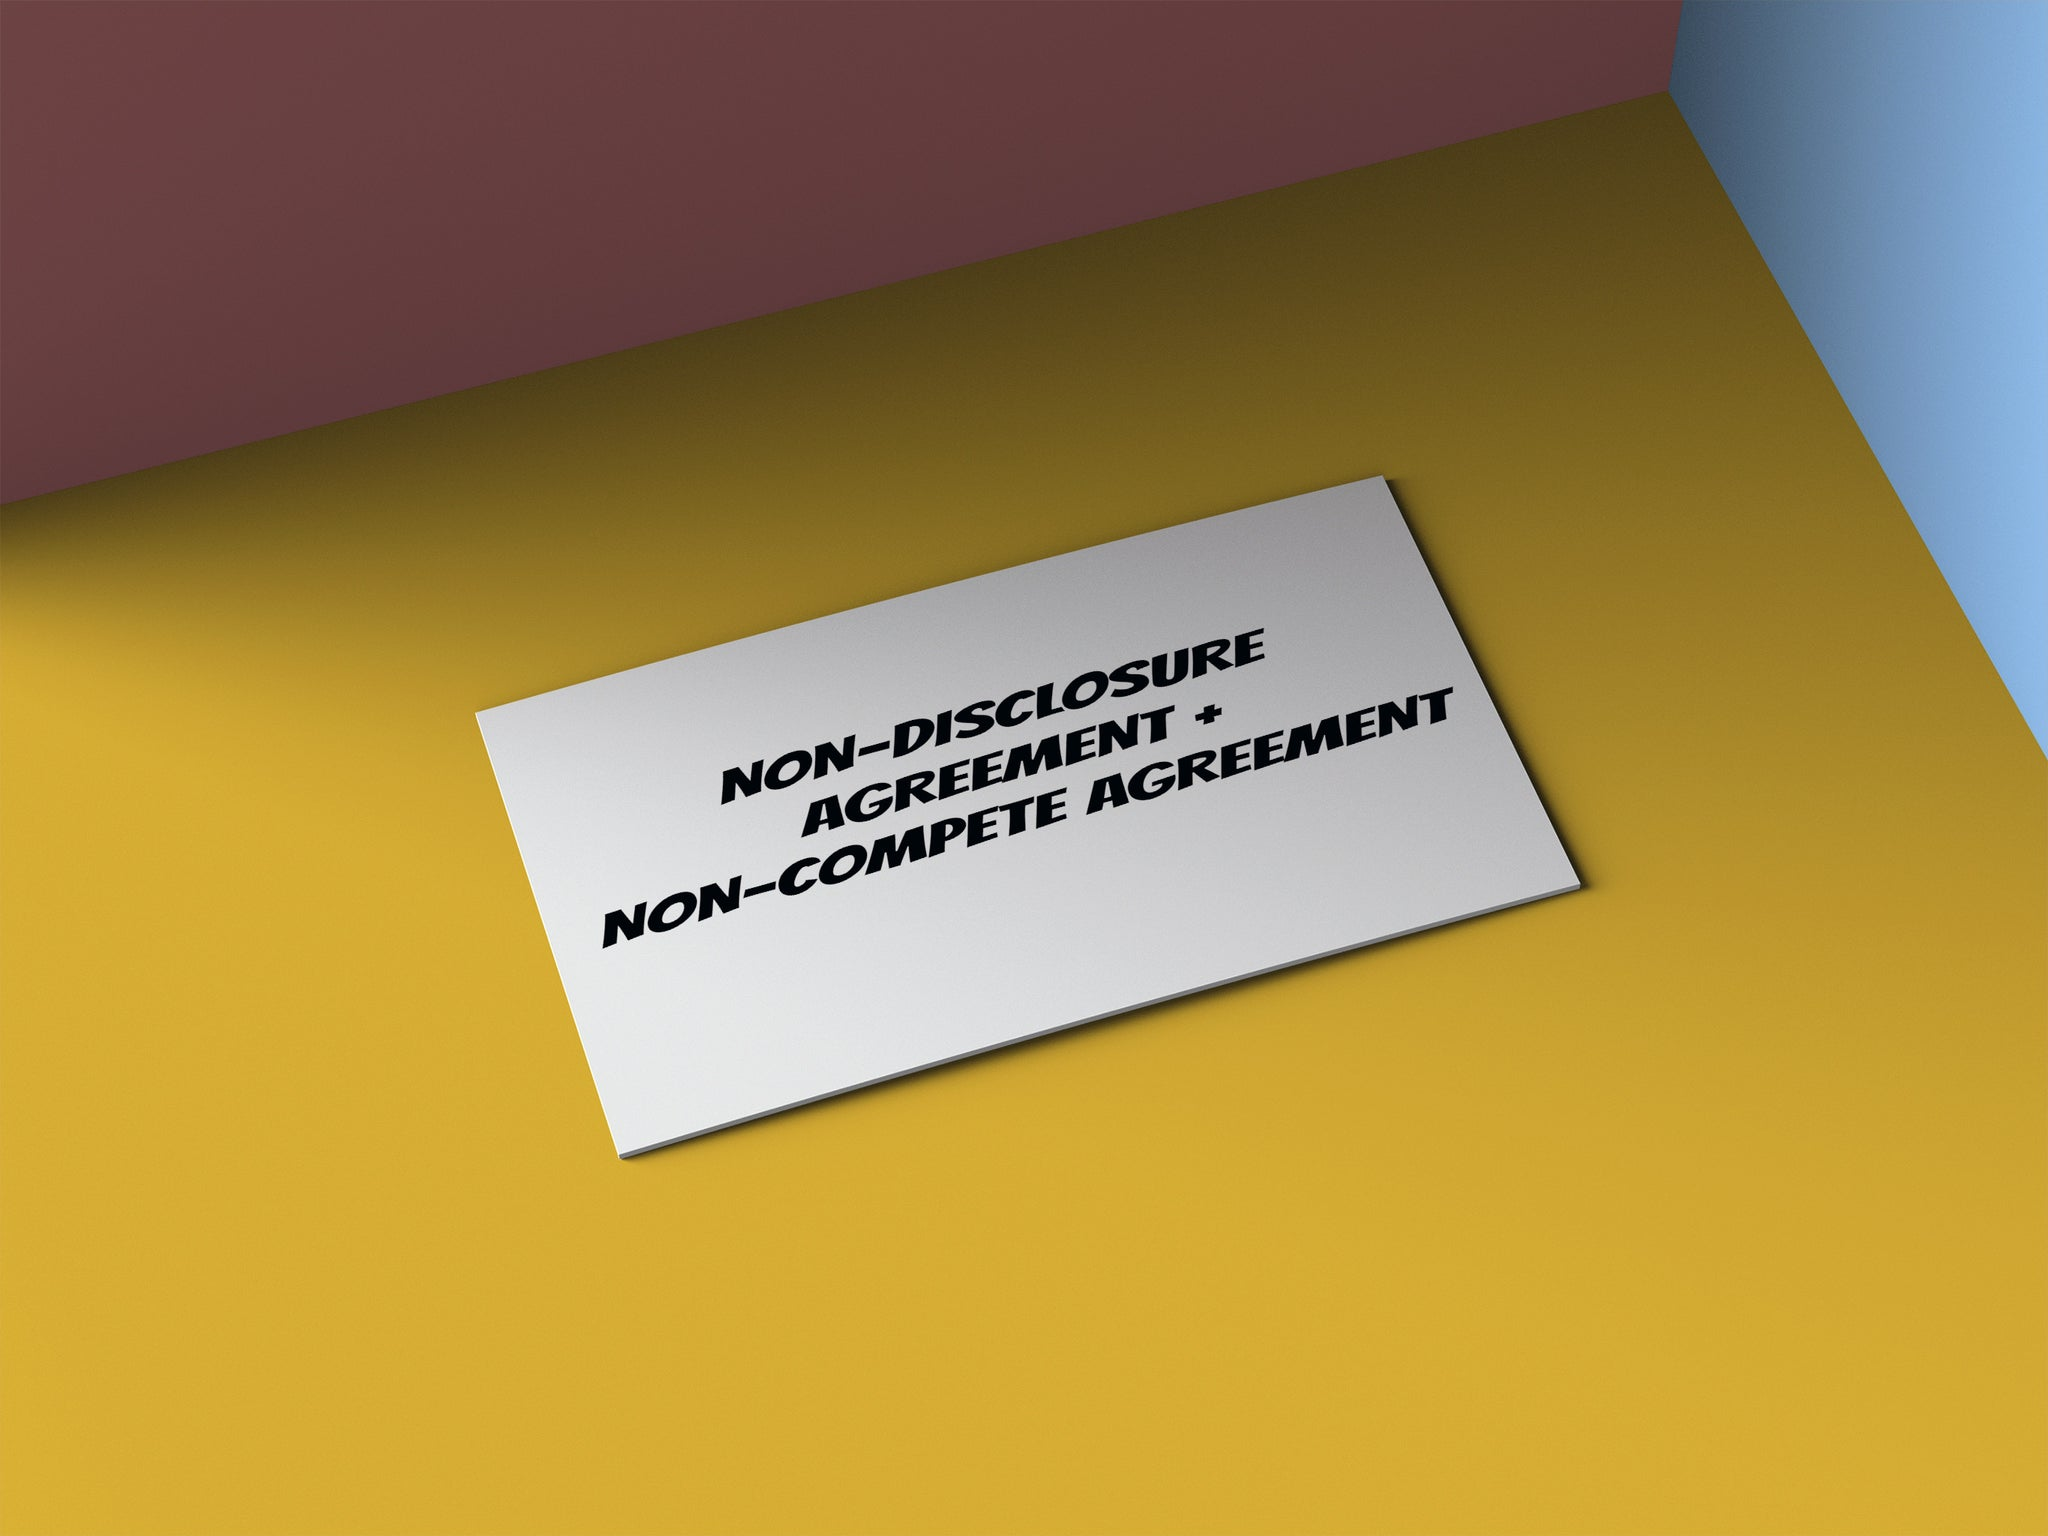 Non-Disclosure Agreement + Non-Compete Agreement